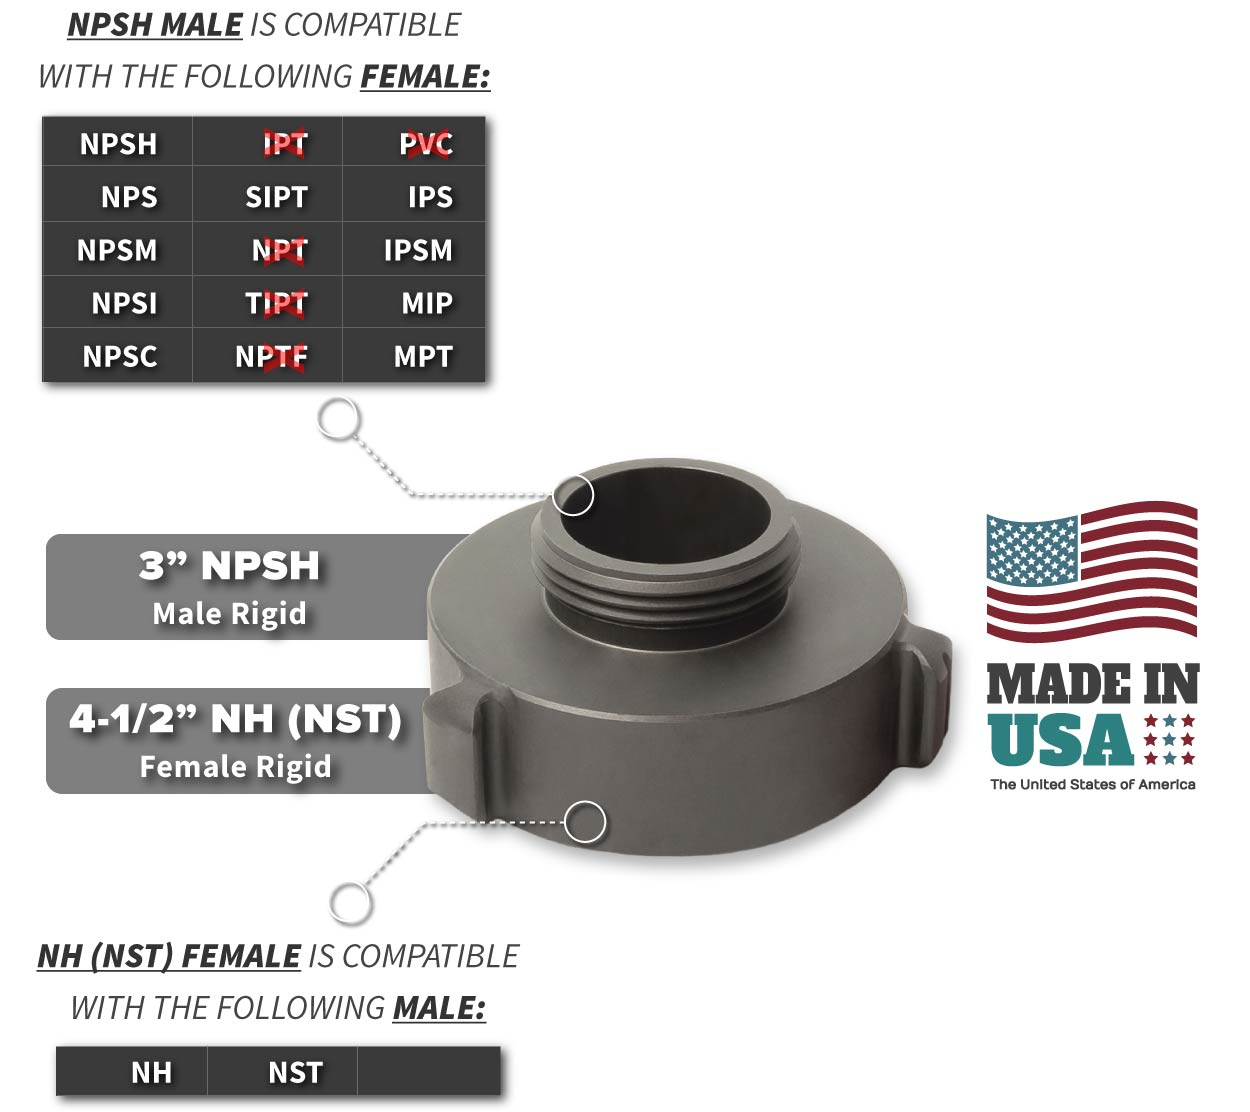 4.5 Inch NH-NST Female x 3 Inch NPSH Male Compatibility Thread Chart